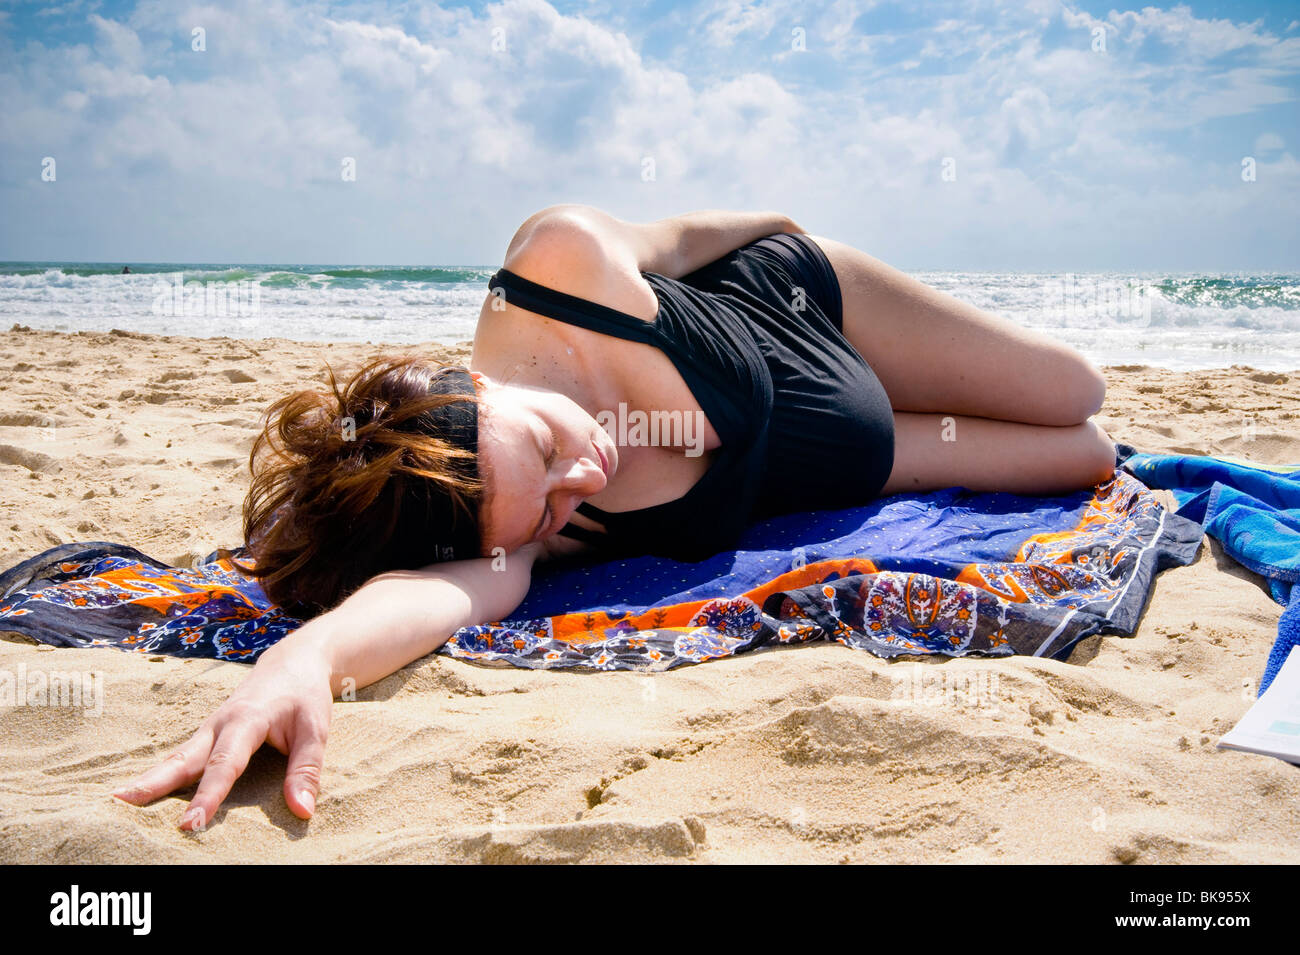 Pregnant woman laying down on the beach by the sea - Stock Image